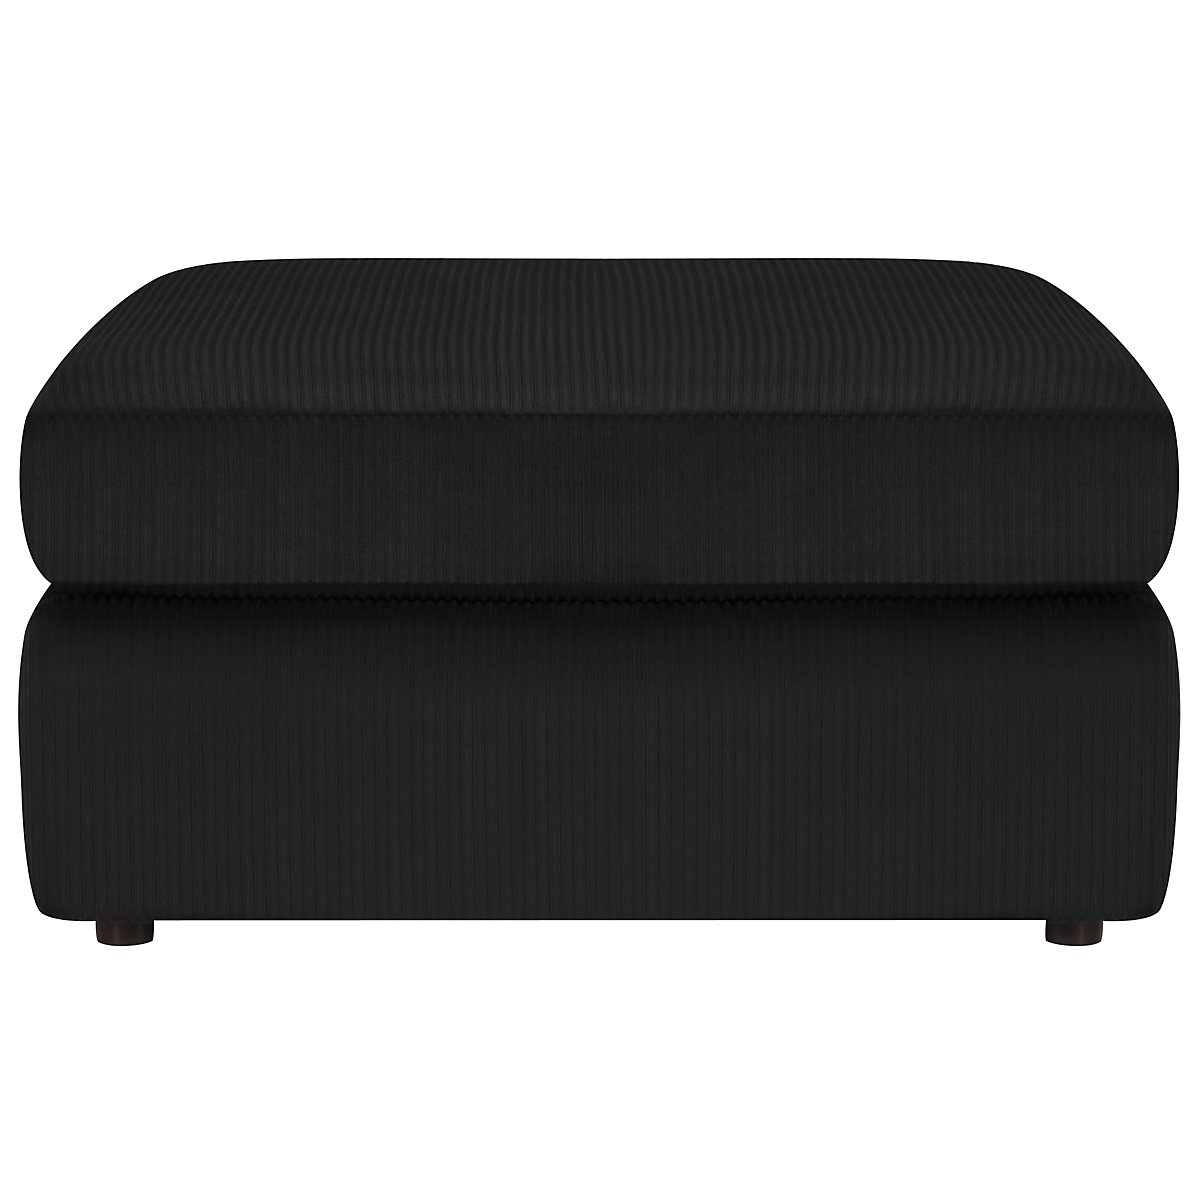 Tara2 Dark Gray Microfiber Cocktail Ottoman